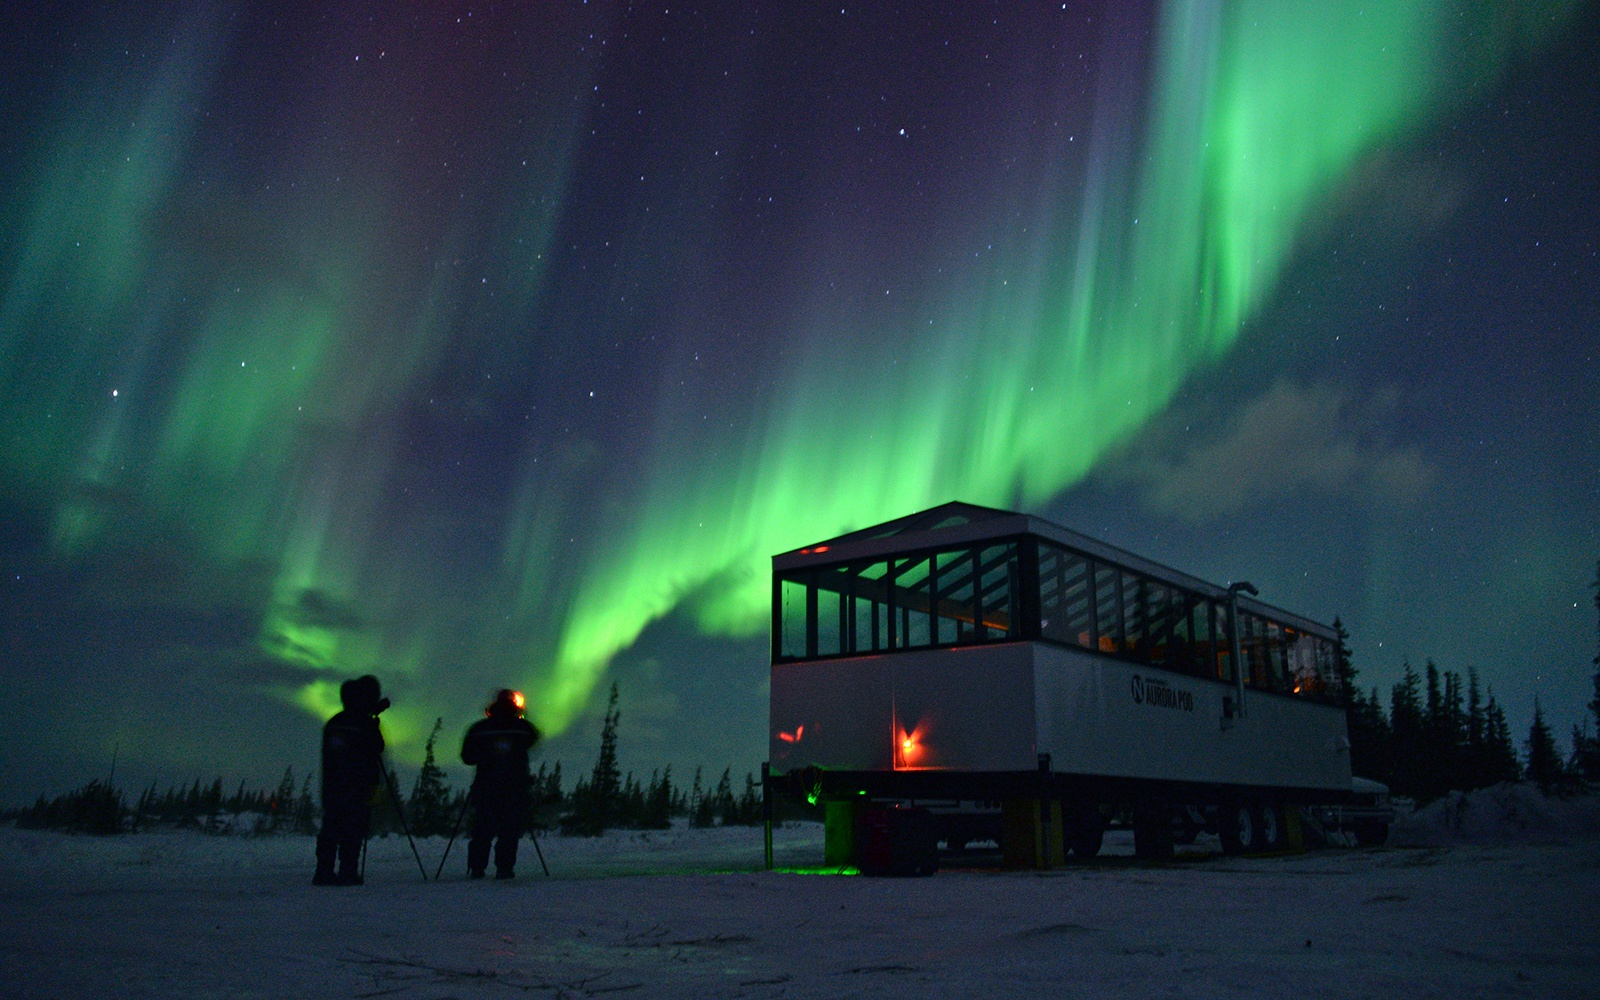 Manitoba S Aurora Pod Offer Amazing Views Of The Aurora